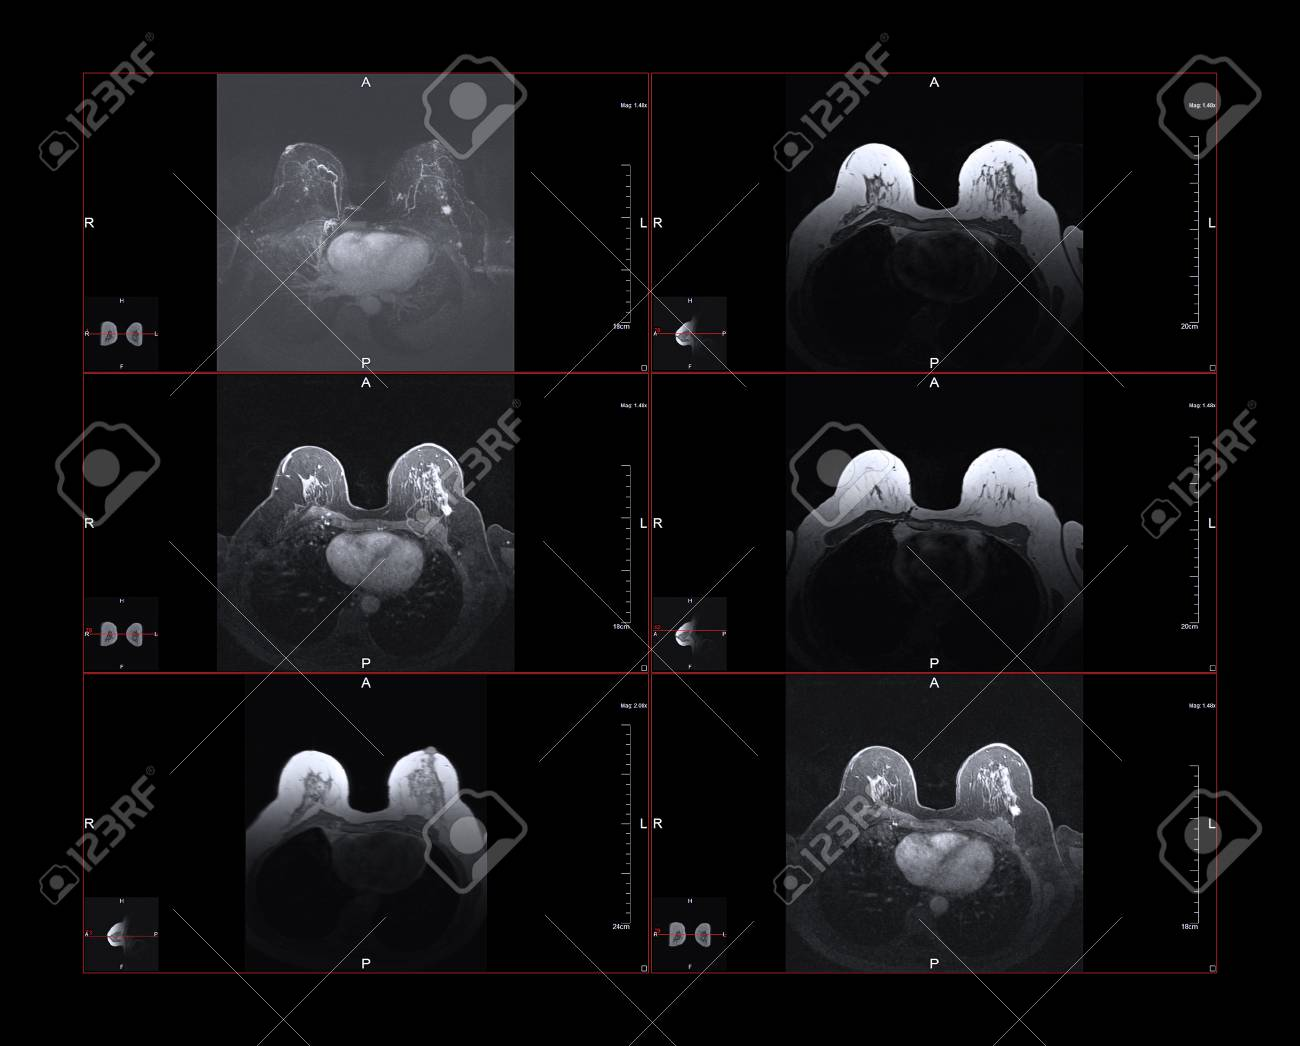 Breast magnetic resonance image, or MRI. The bright white dot in the larger images is Stage One cancer. The small images show the position within the body. - 89930854